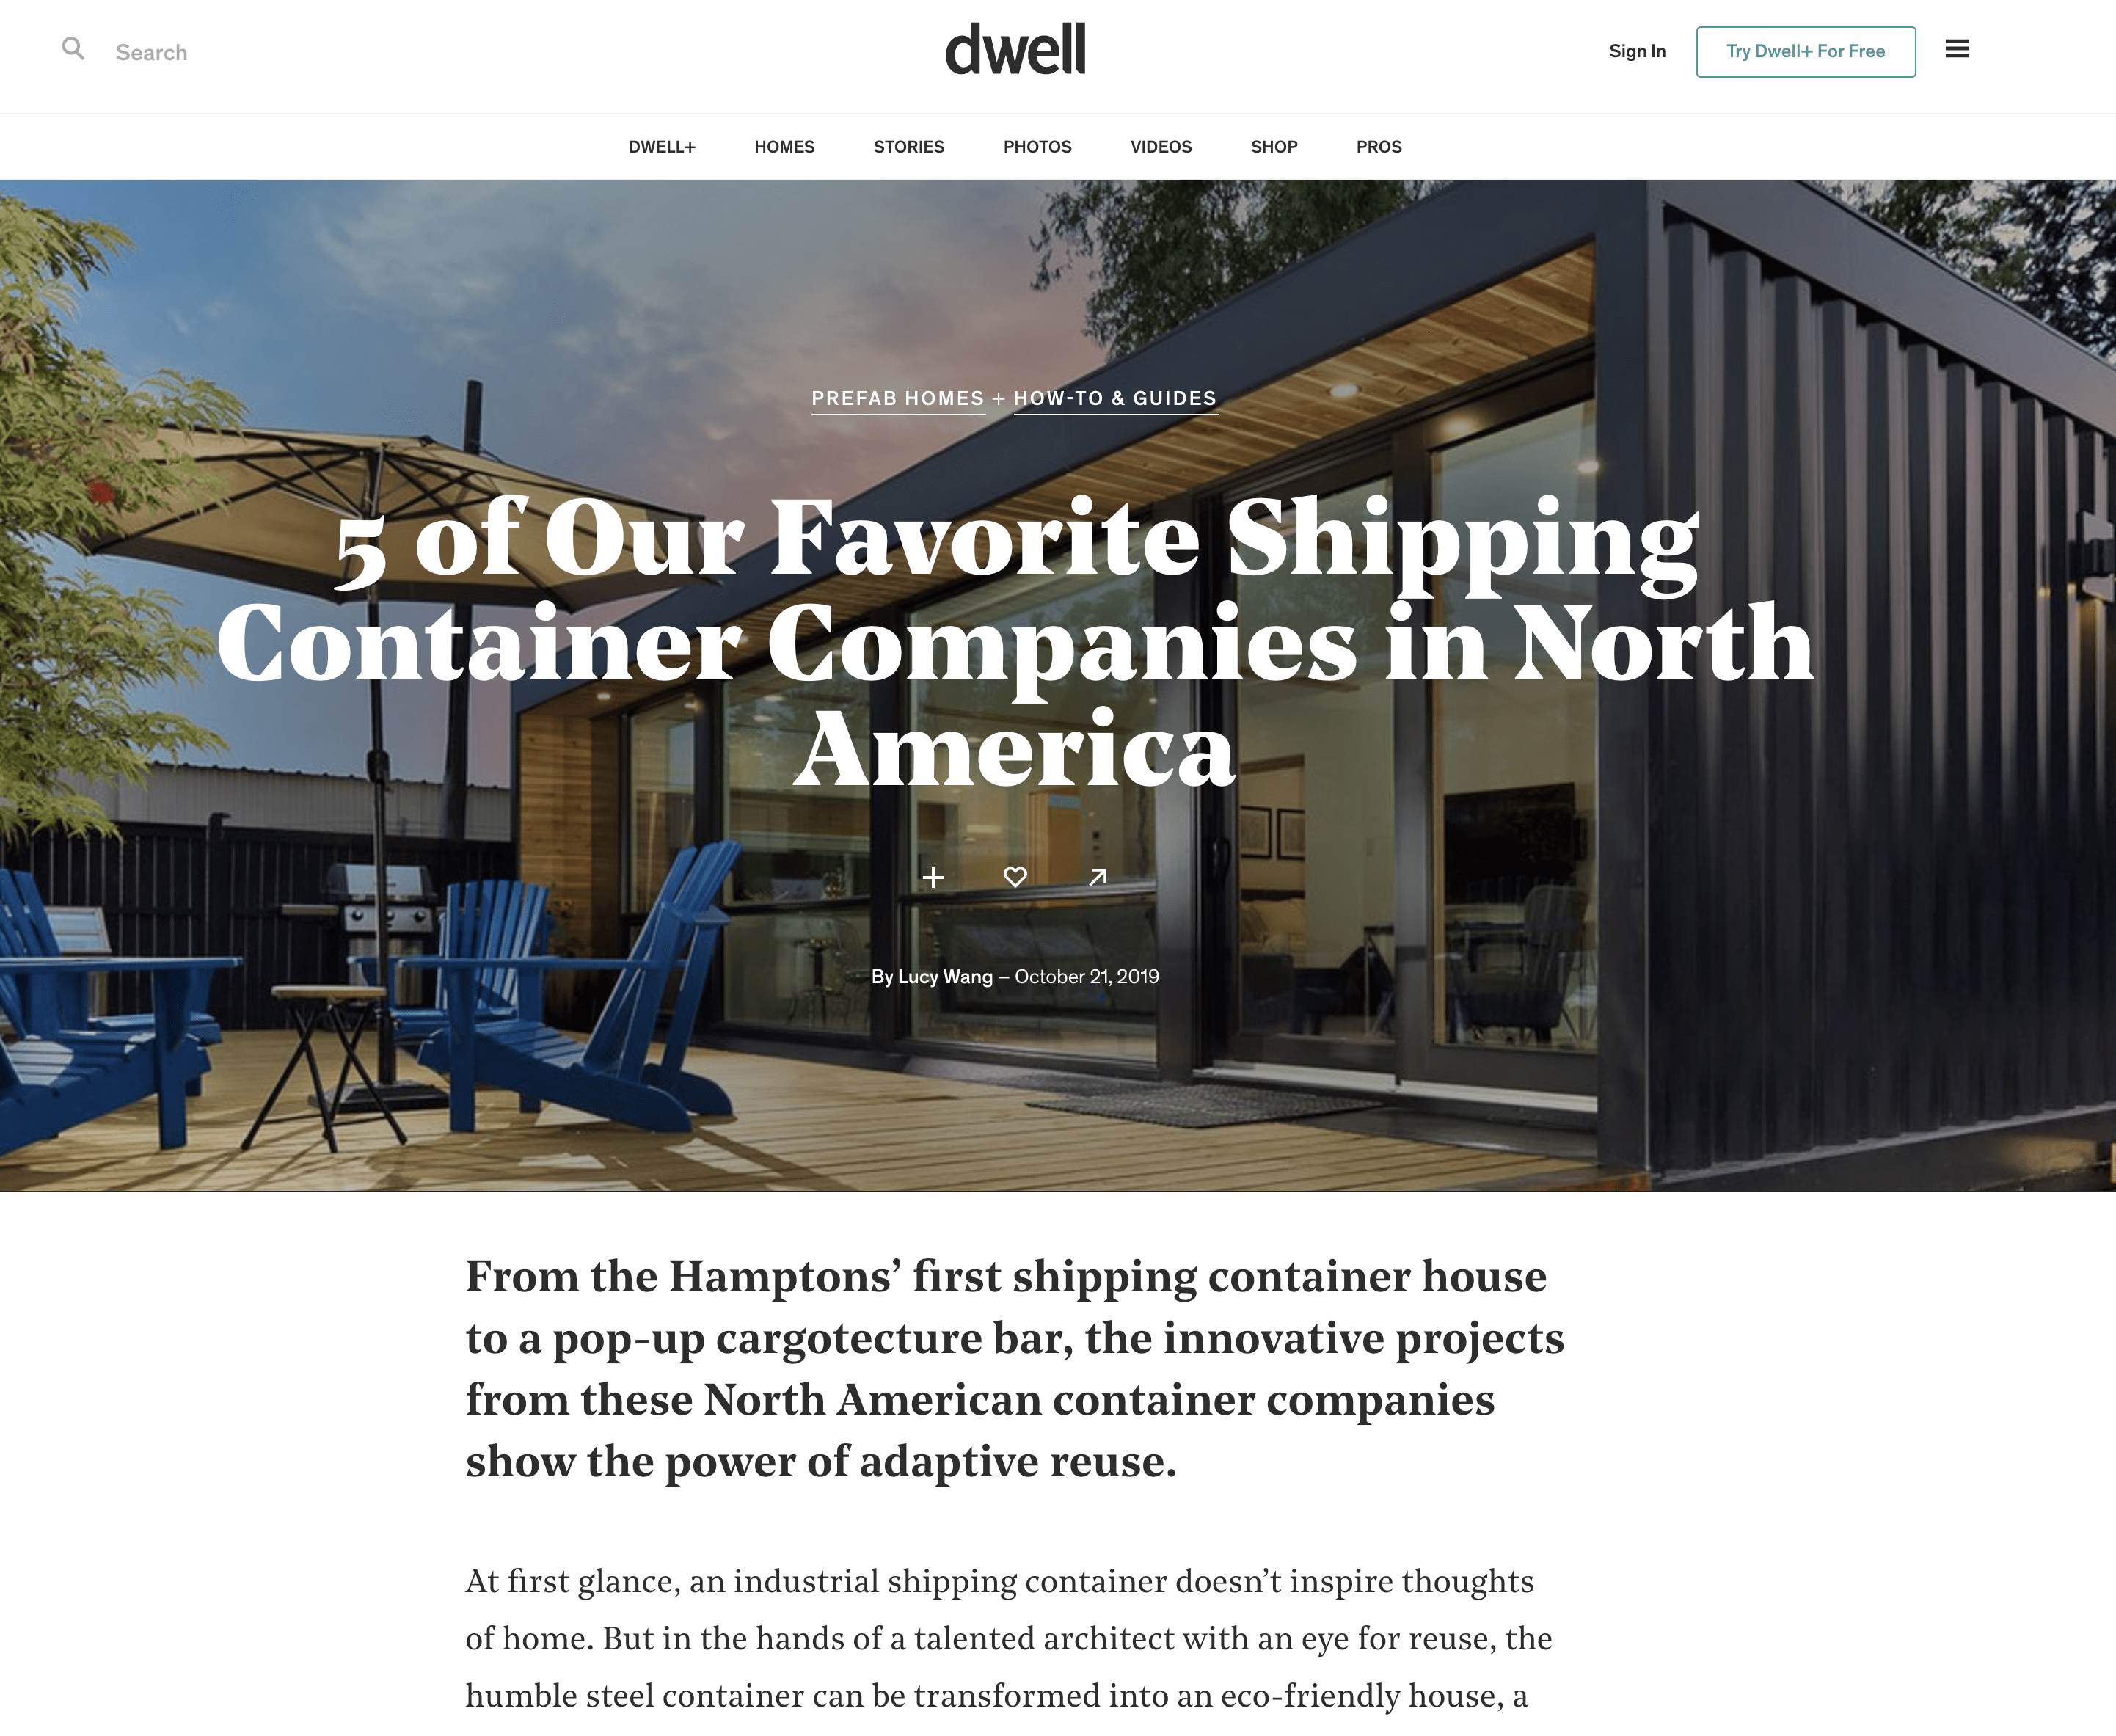 Best Shipping Container Companies